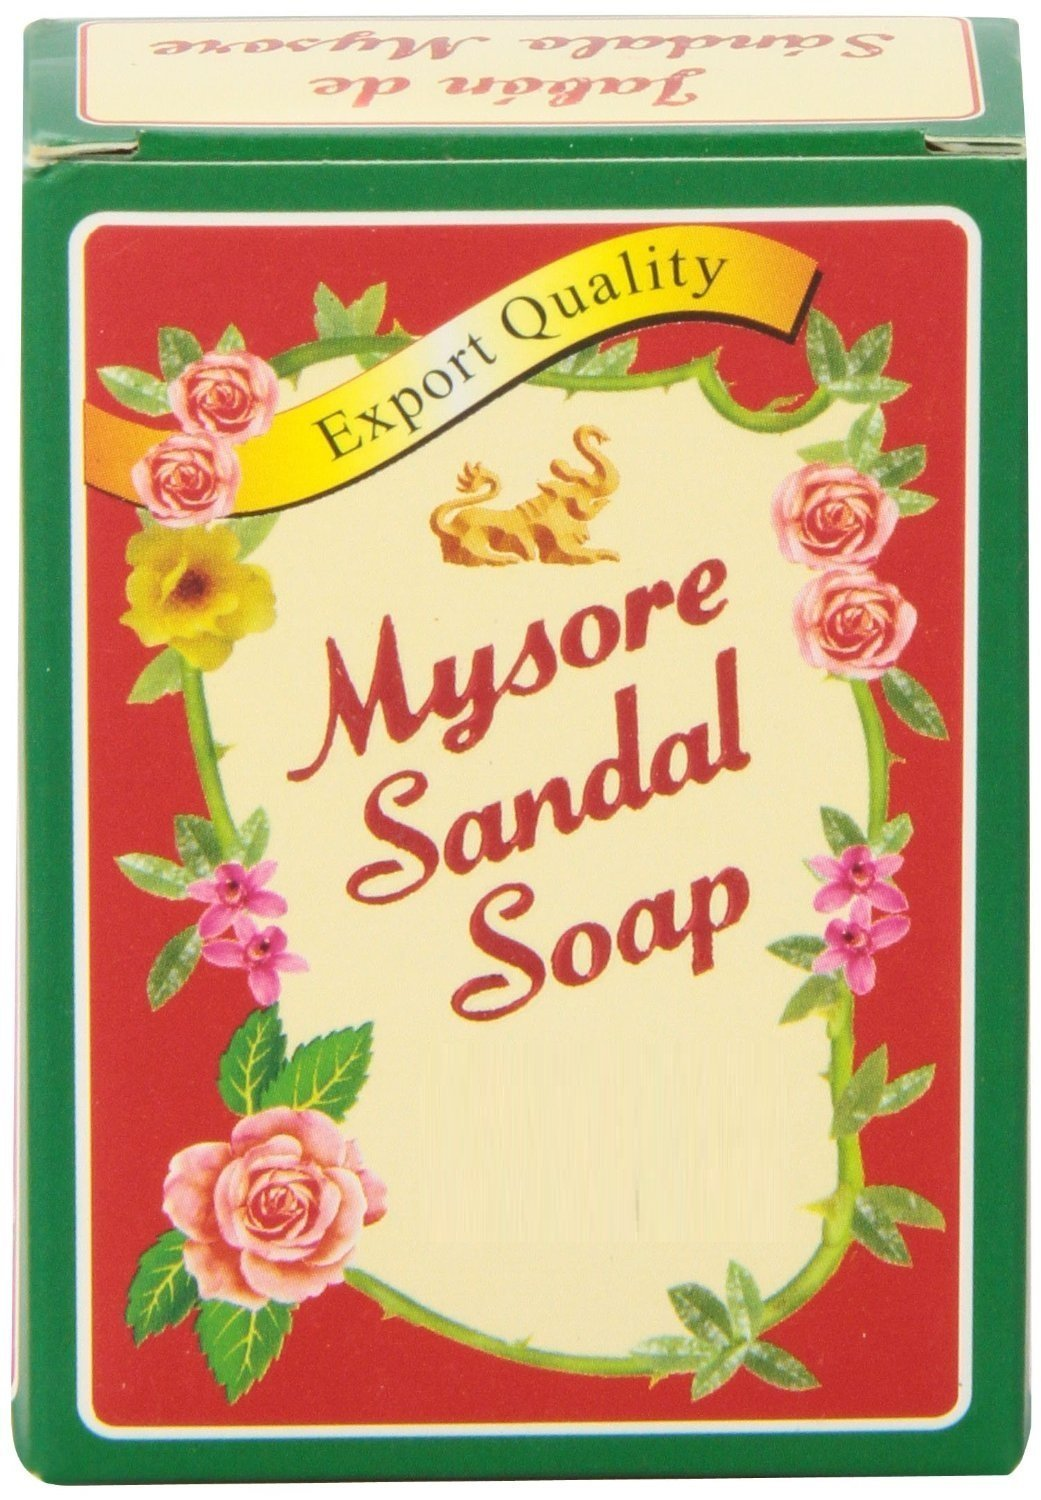 Mysore Sandal Bathing Soap with Sandalwood Oil - 150 gms by Mysore Product